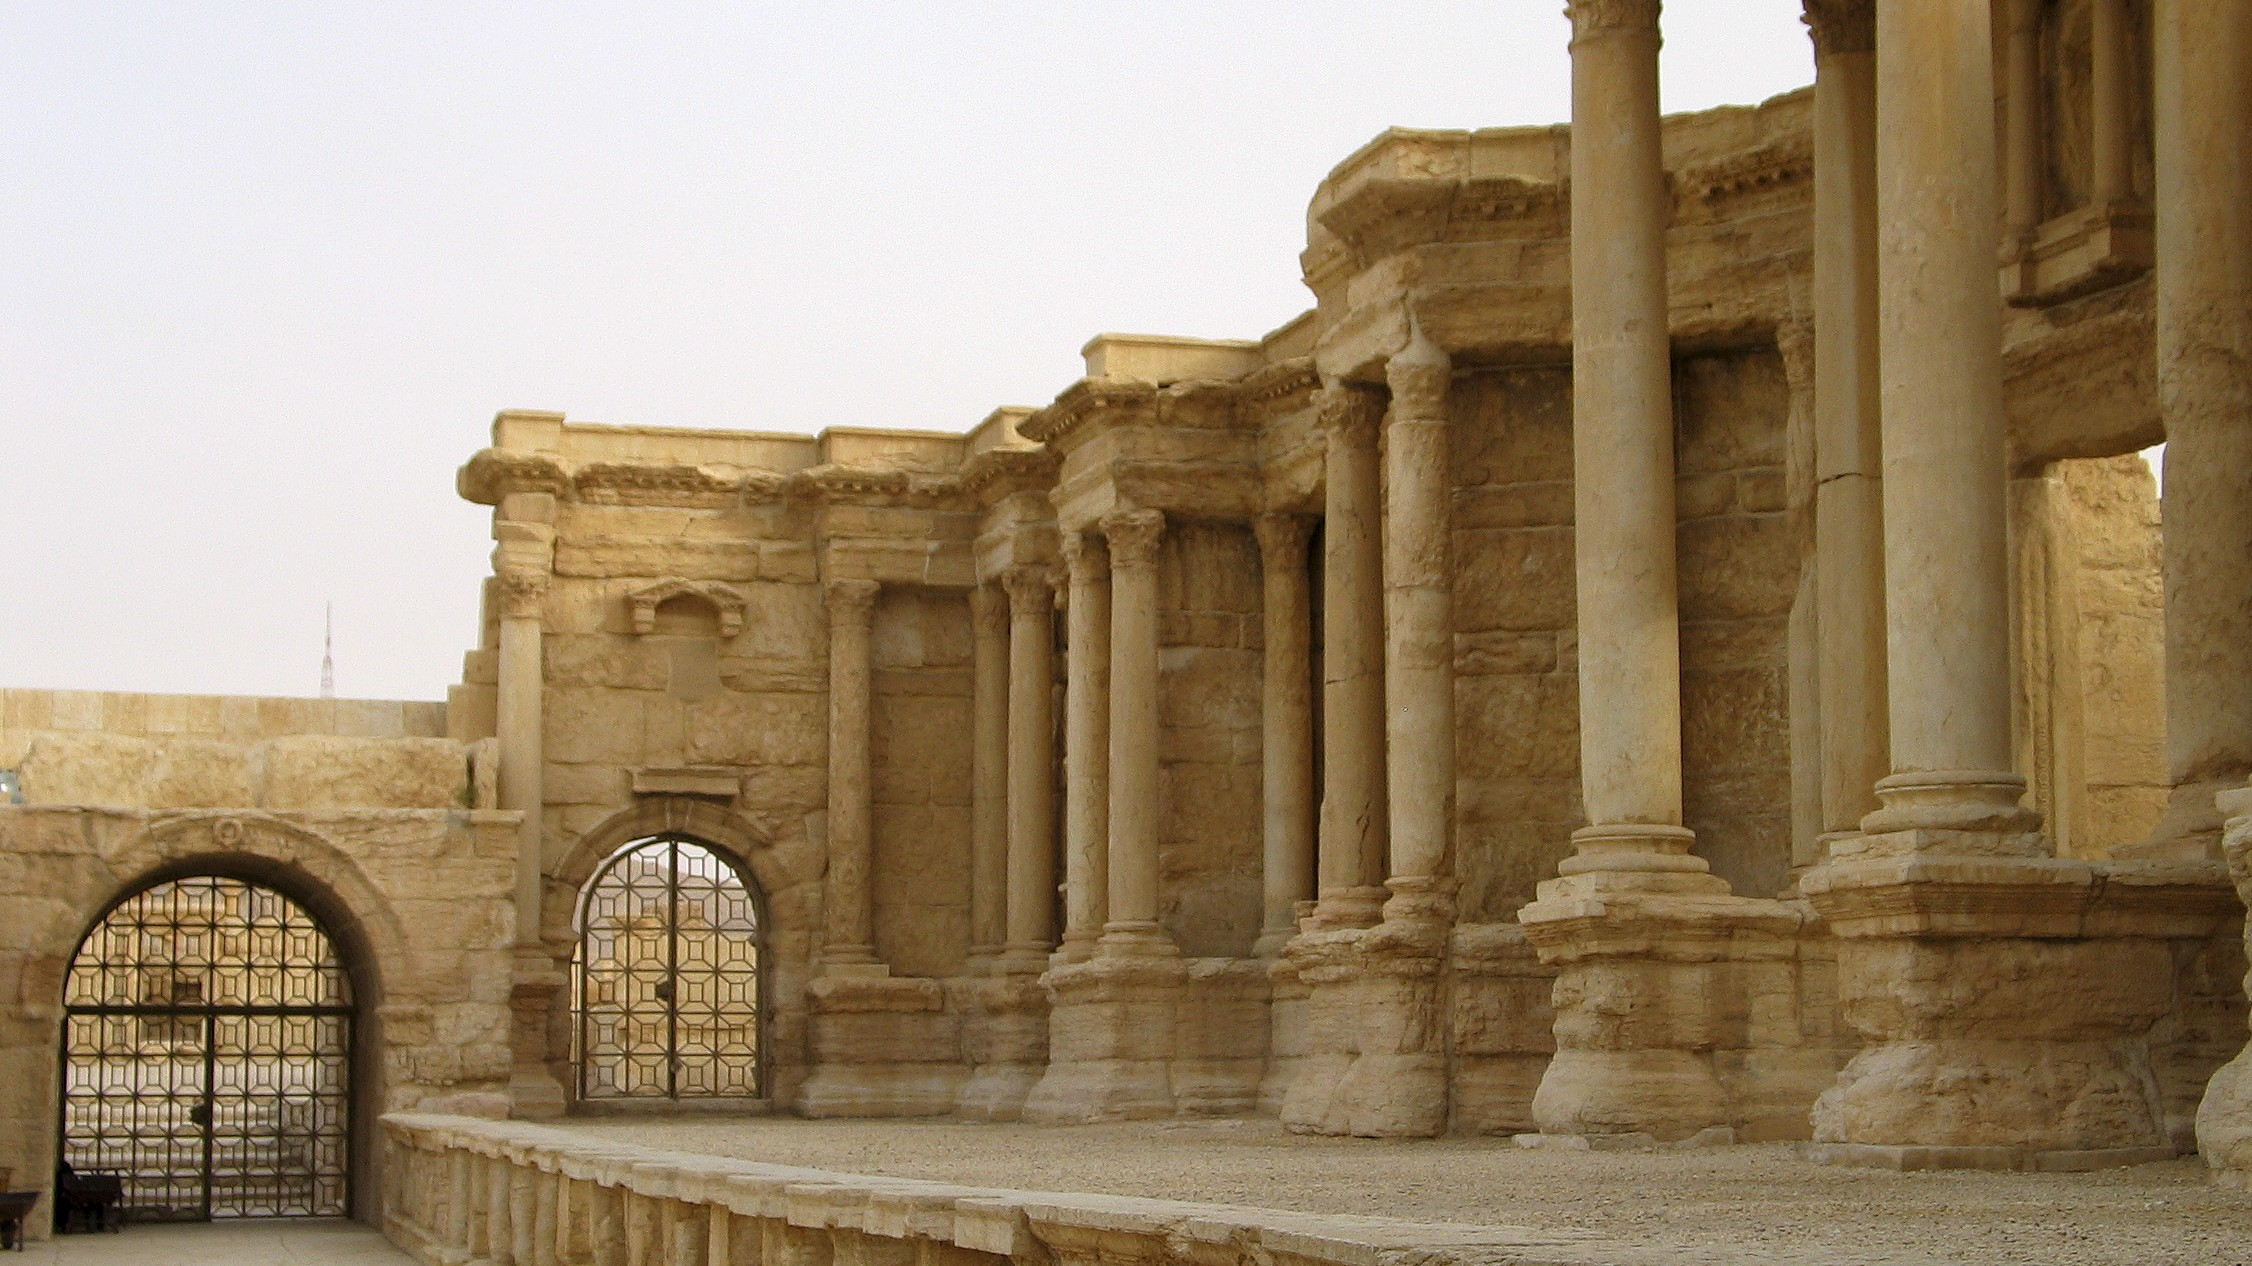 Columns are seen in the historical city of Palmyra, Syria, June 12, 2009. Satellite images have confirmed the destruction of the Temple of Bel, which was one of the best preserved Roman-era sites in the Syrian city of Palmyra, a United Nations agency said, after activists said the hardline Islamic State group had targeted it. The Syrian Observatory for Human Rights monitoring group and other activists said on August 30, 2015 that Islamic State had destroyed part of the more than 2,000-year-old temple, one of Palmyra's most important monuments. Picture taken June 12, 2009